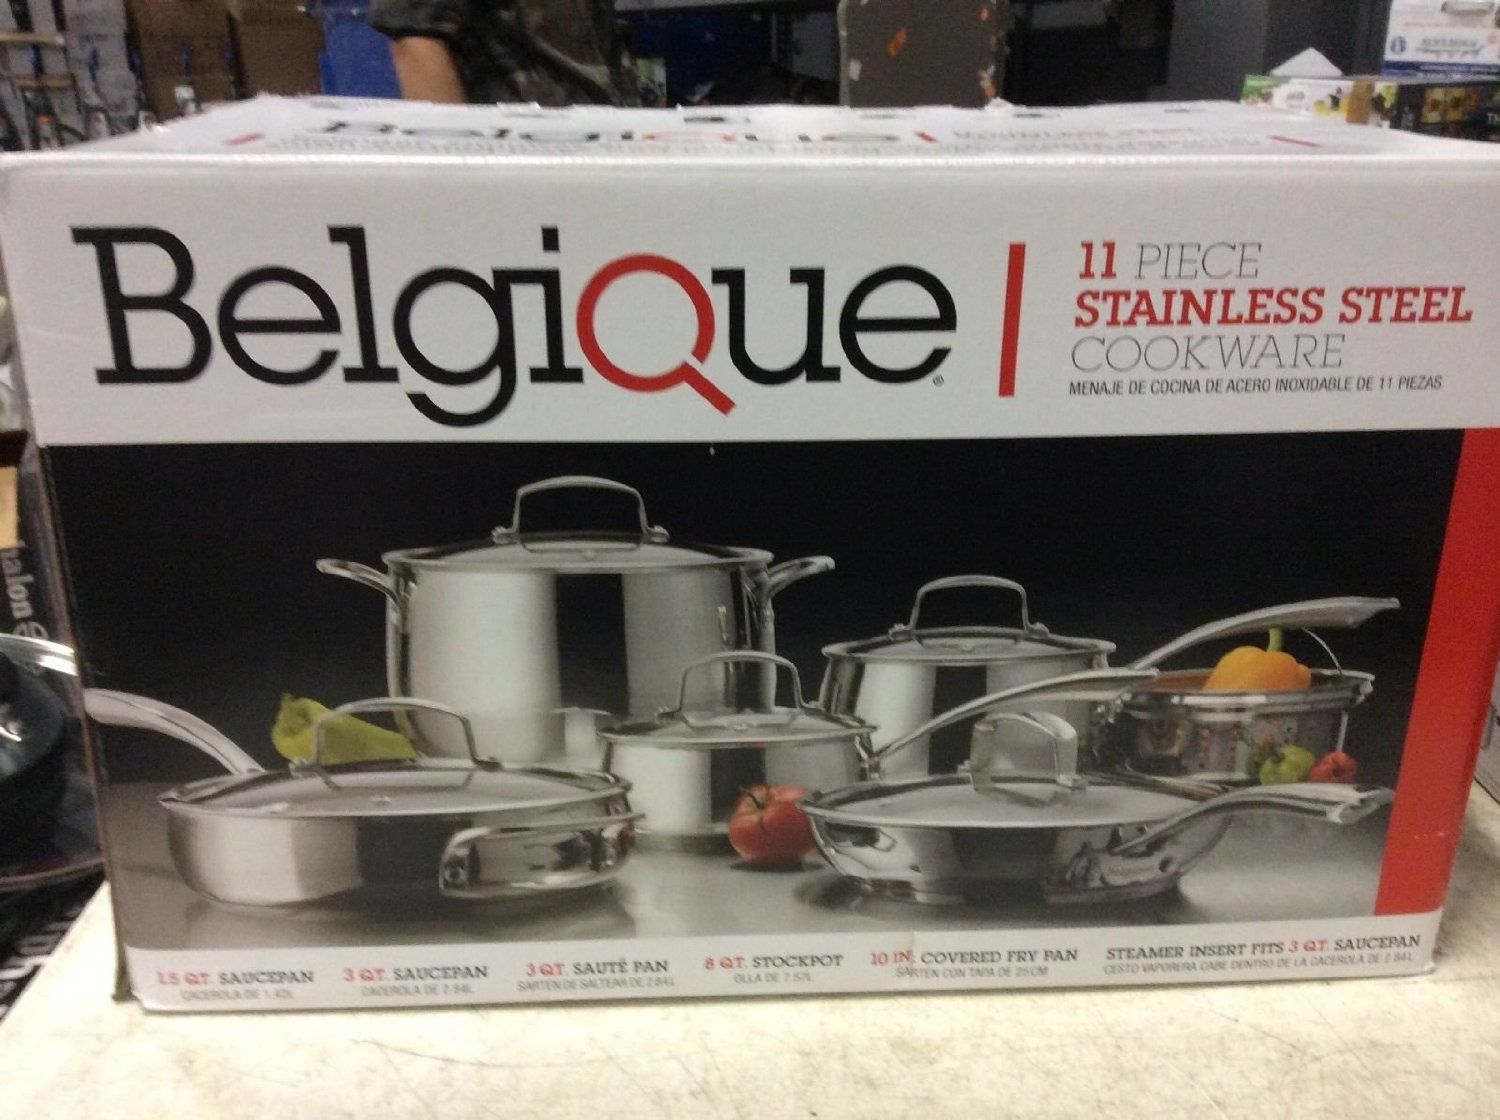 Belgique Cookware Reviews - Best Cookware Guide